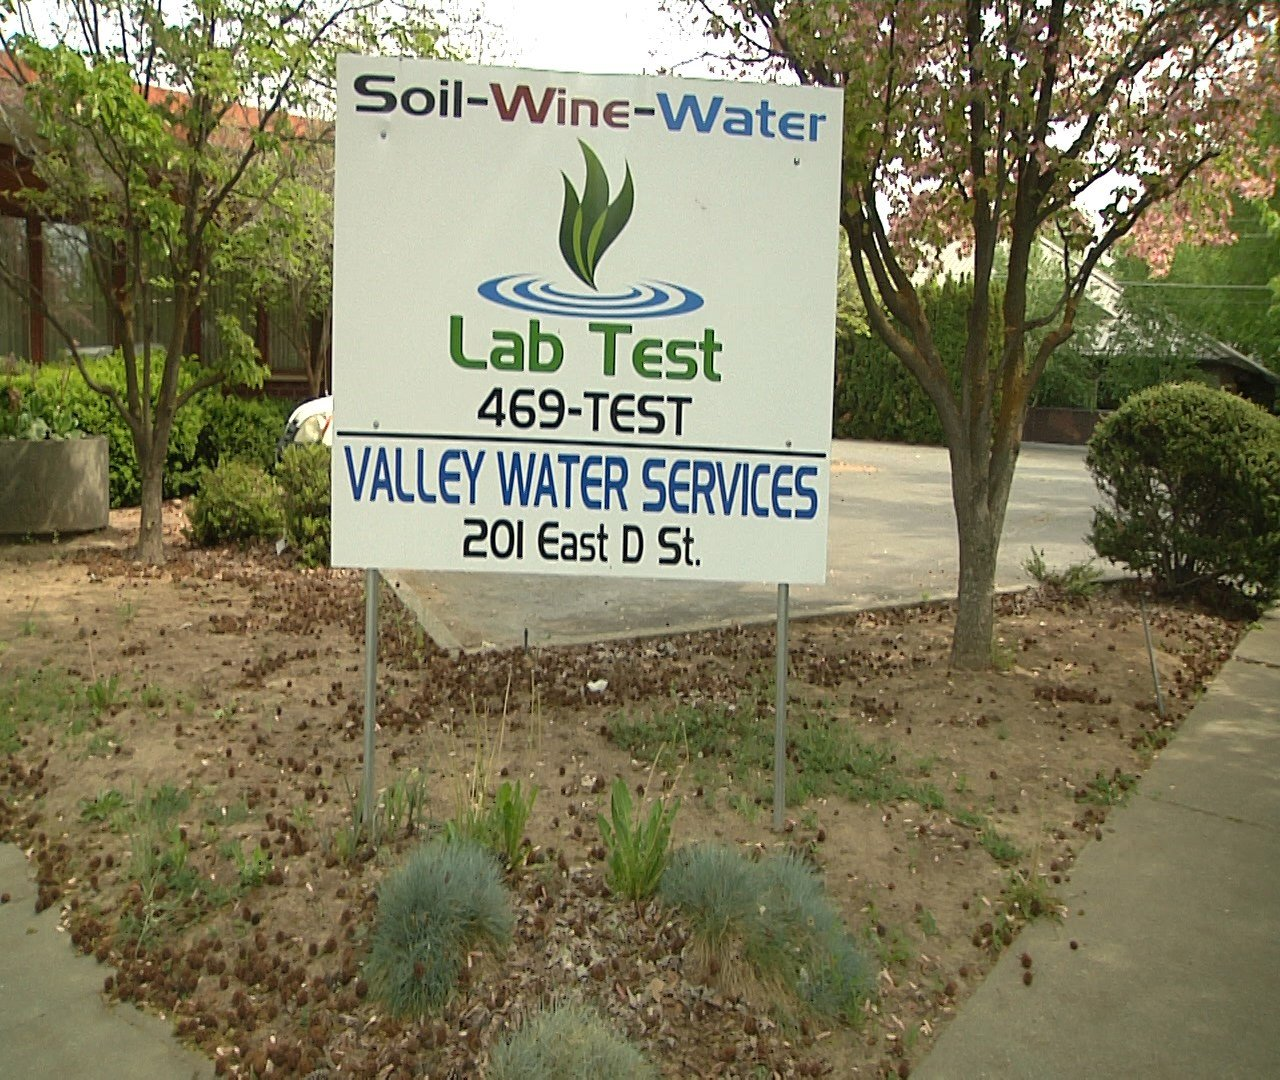 LabTest Business Sign